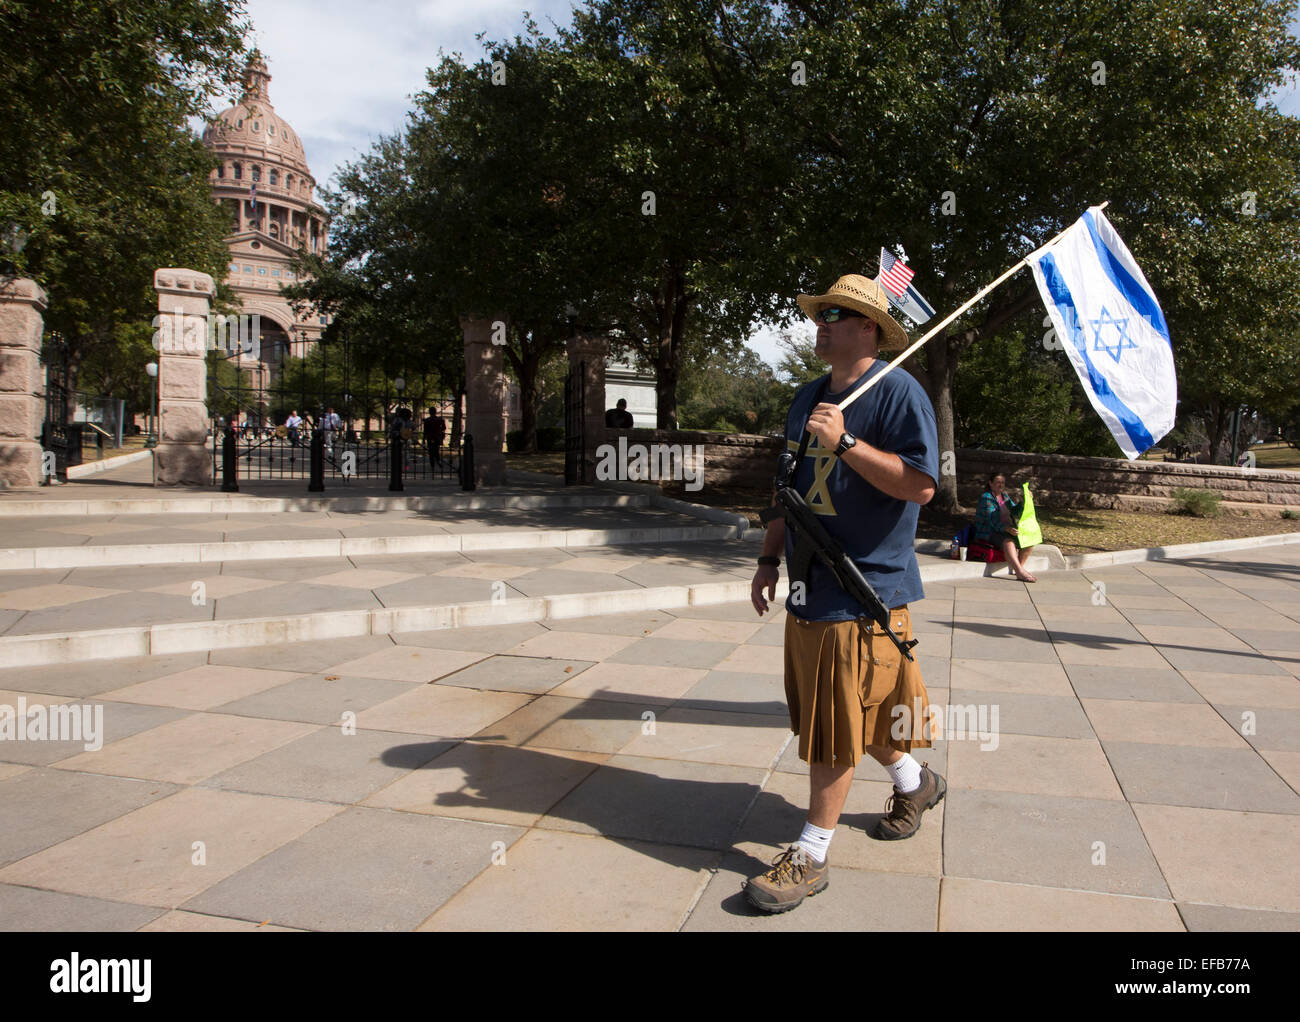 Austin, Texas, USA. 29th January, 2015. Texas Muslim Capitol Day organized by the Council on American-Islamic Relations - Stock Image